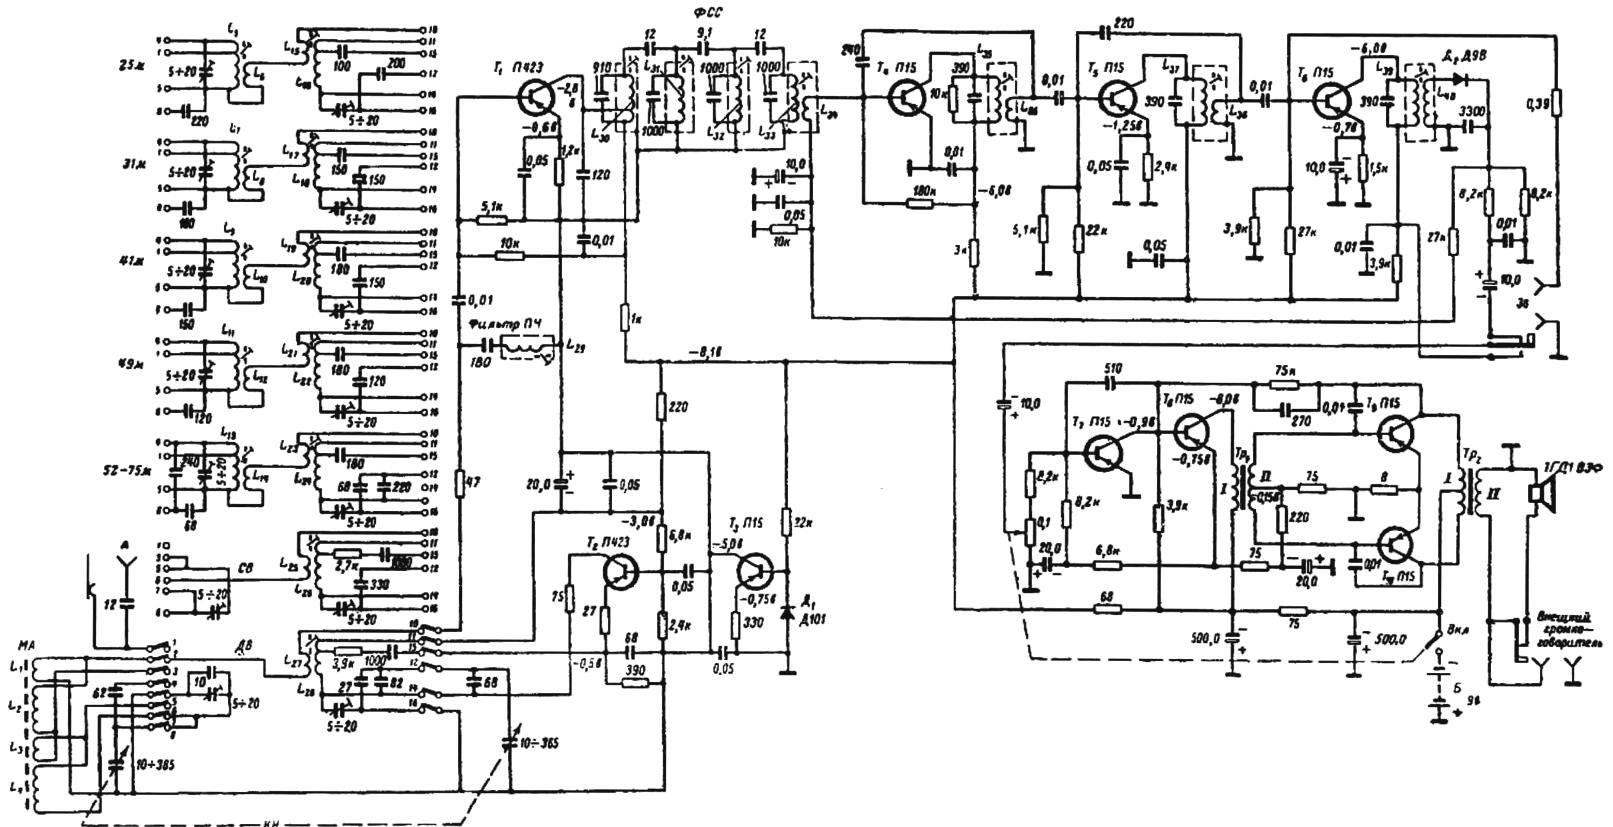 Fig. 2. Schematic diagram of the receiver